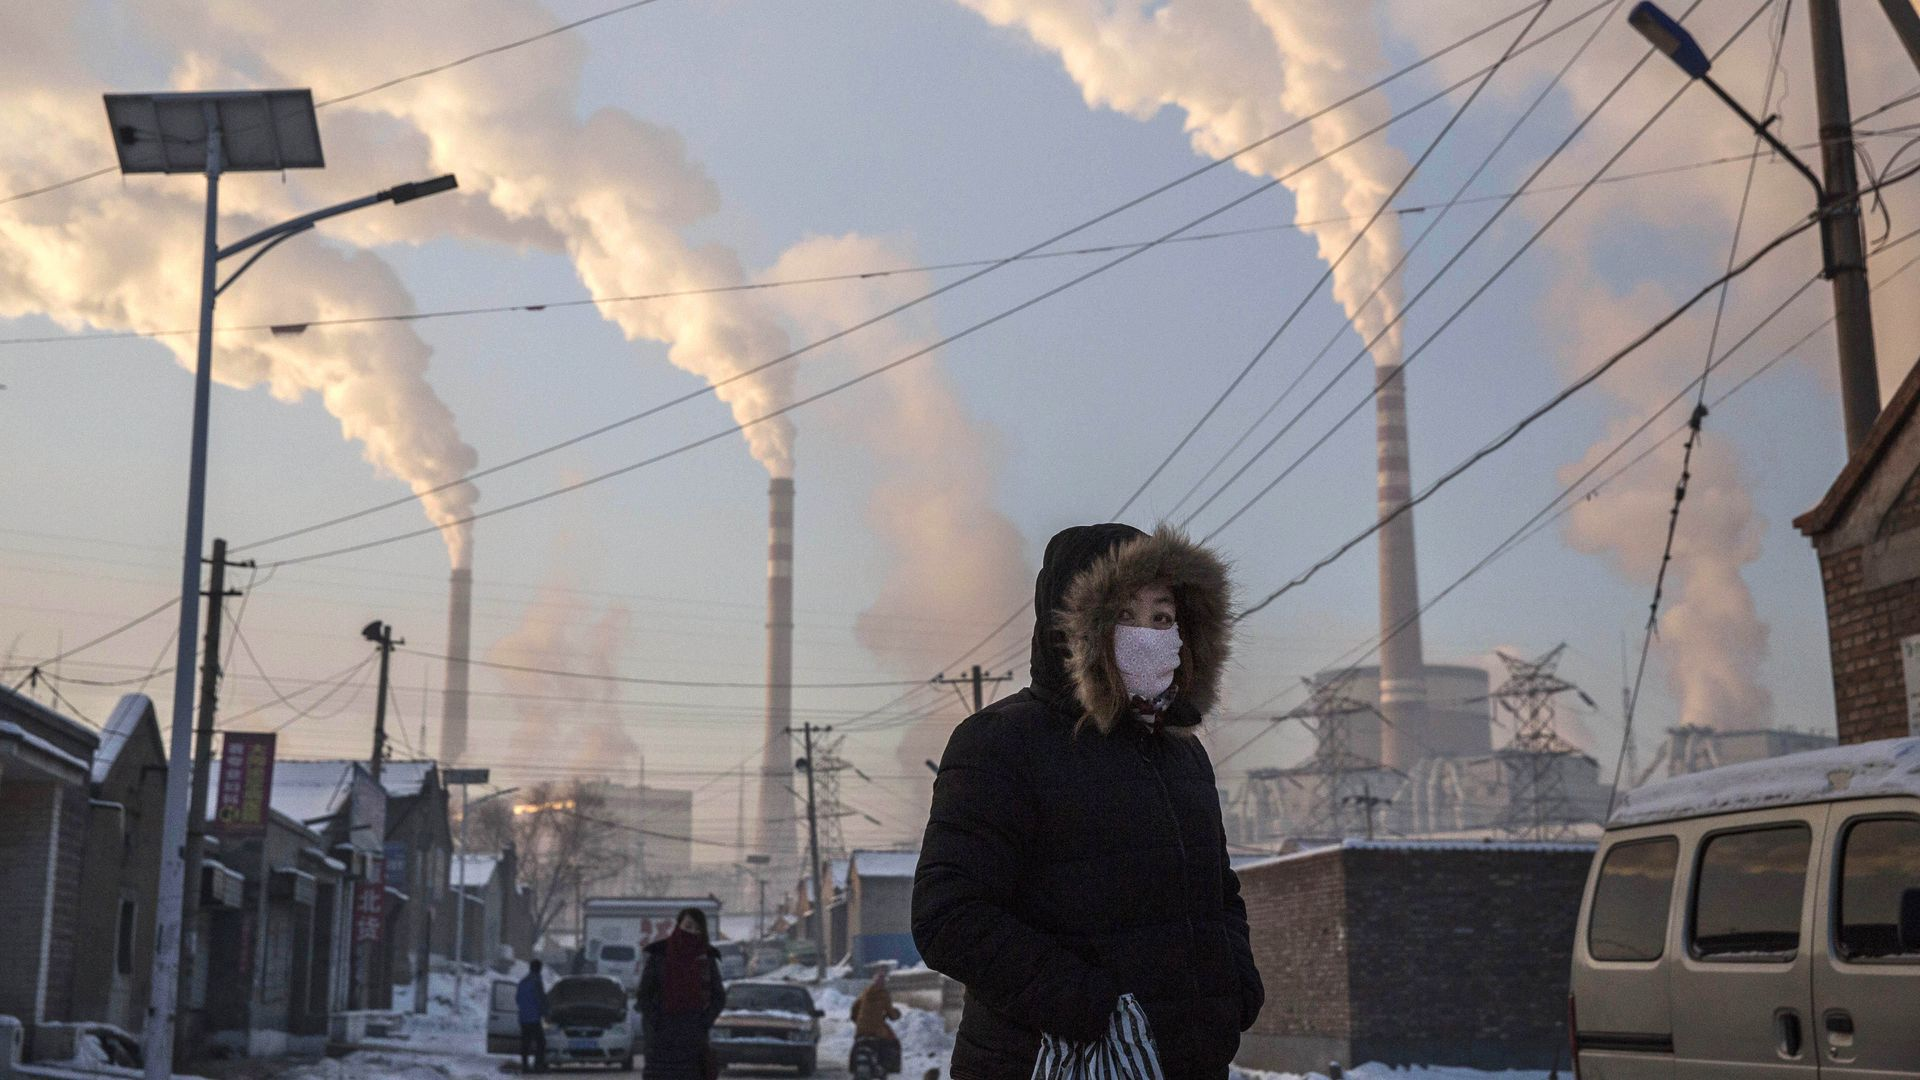 Smoke billows from stacks as a Chinese woman wears as mask while walking in a neighborhood next to a coal fired power plant on November 26, 2015 in Shanxi, China.